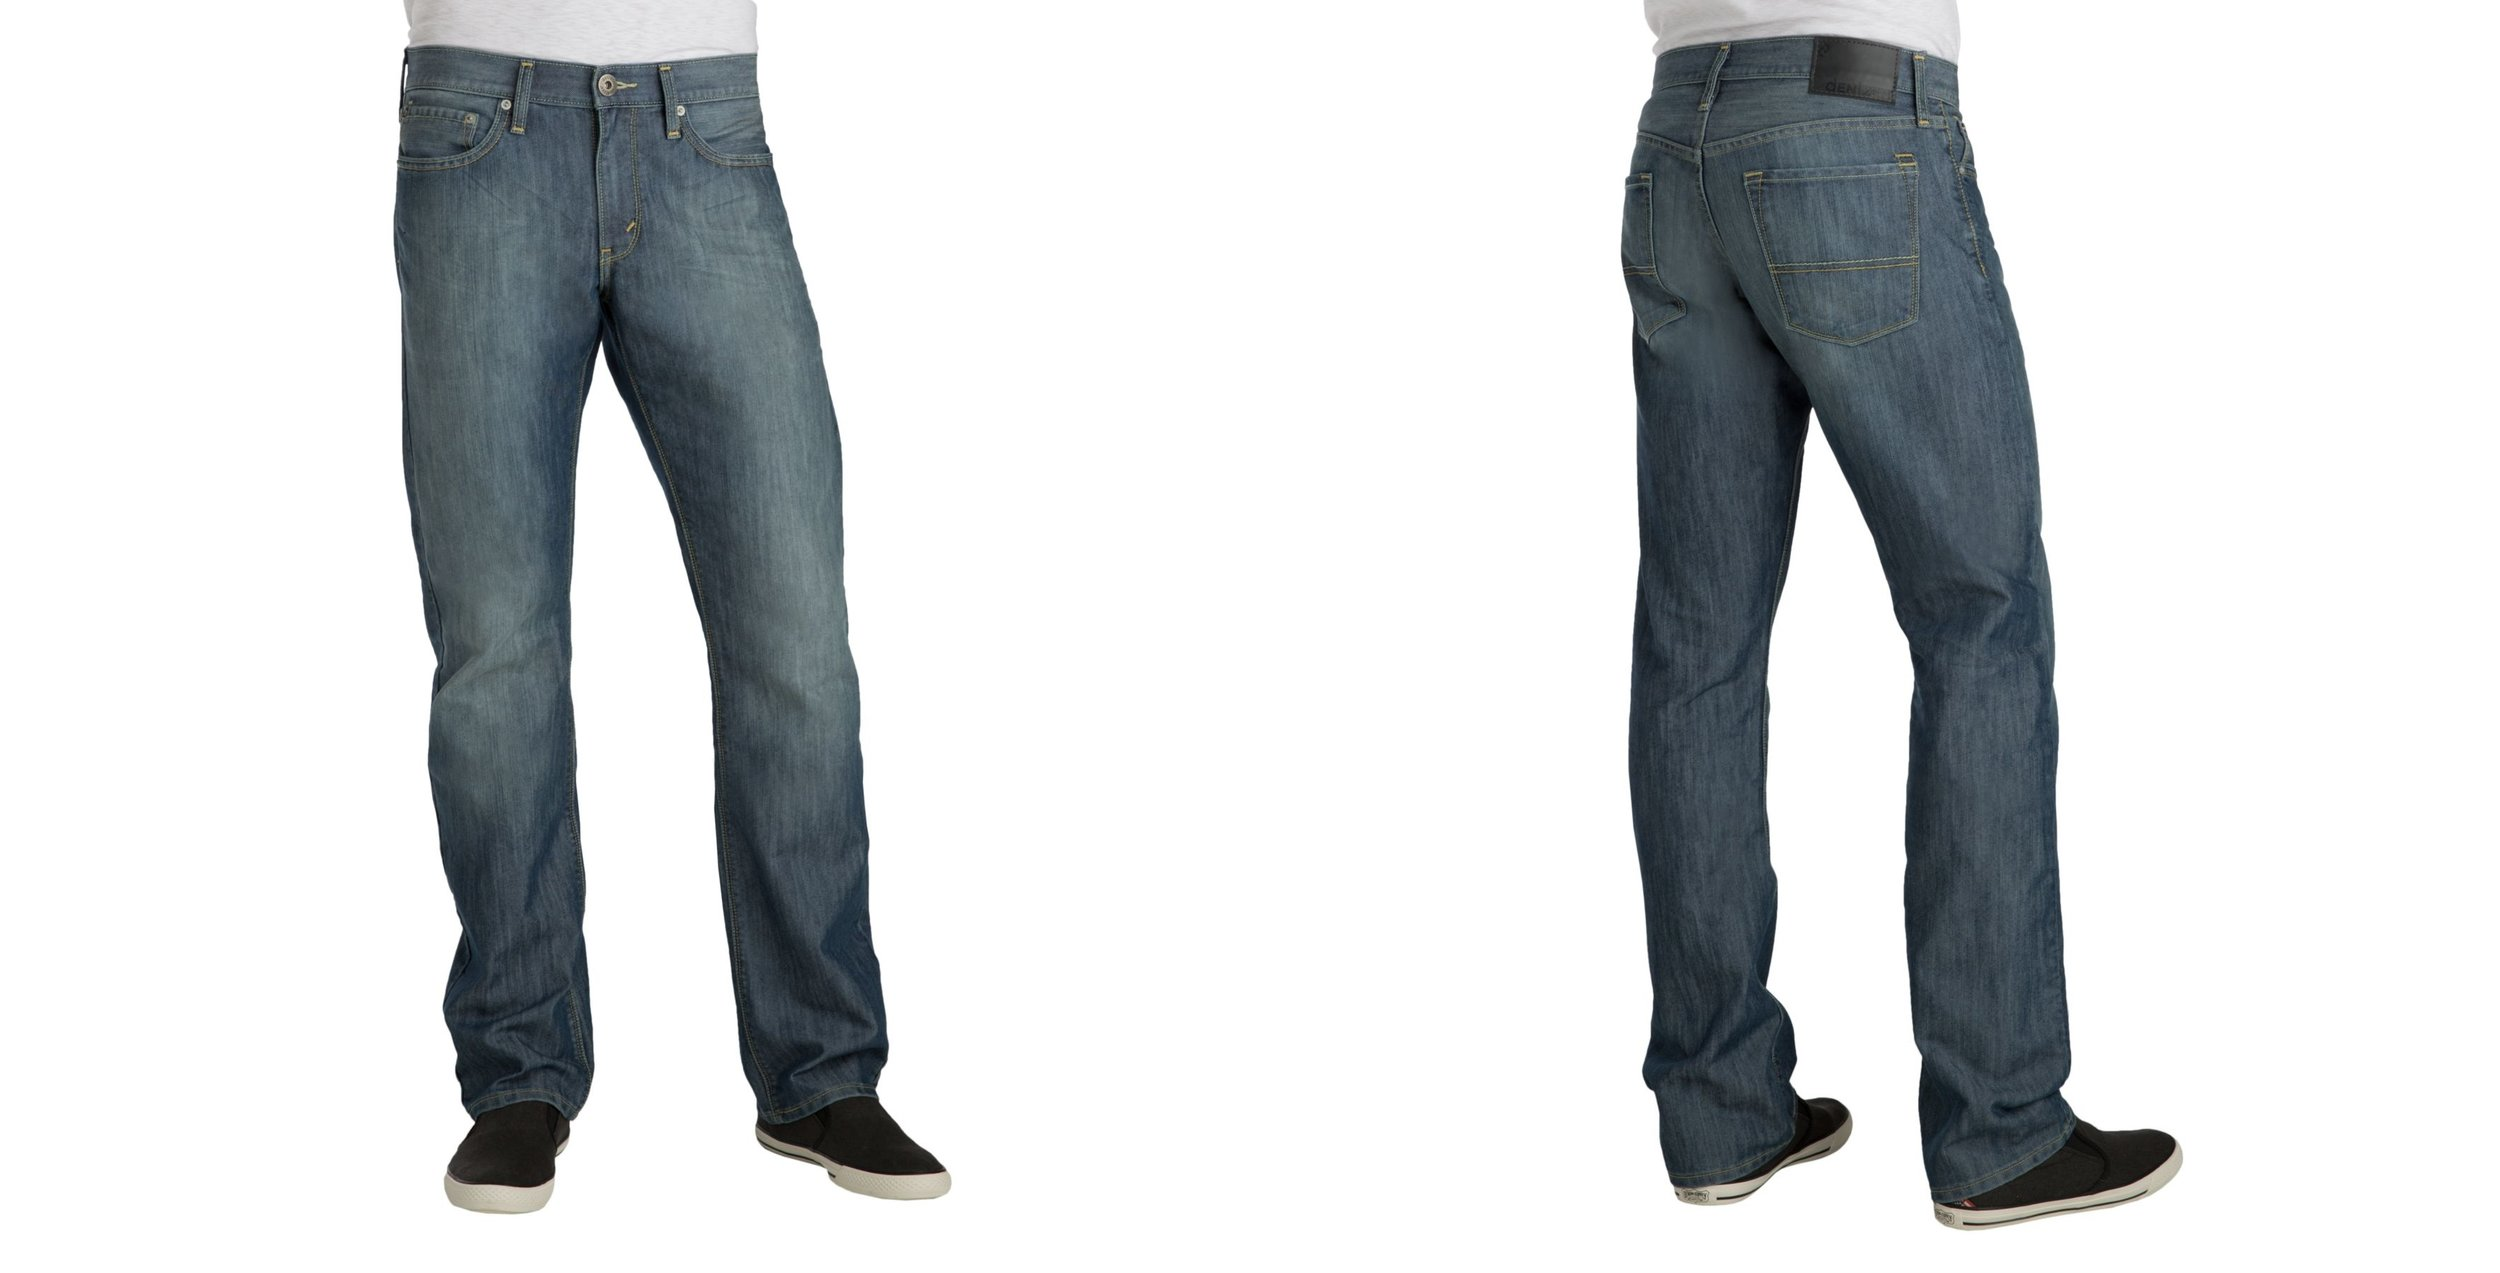 The Best Holiday Gifts for Men - Jeans